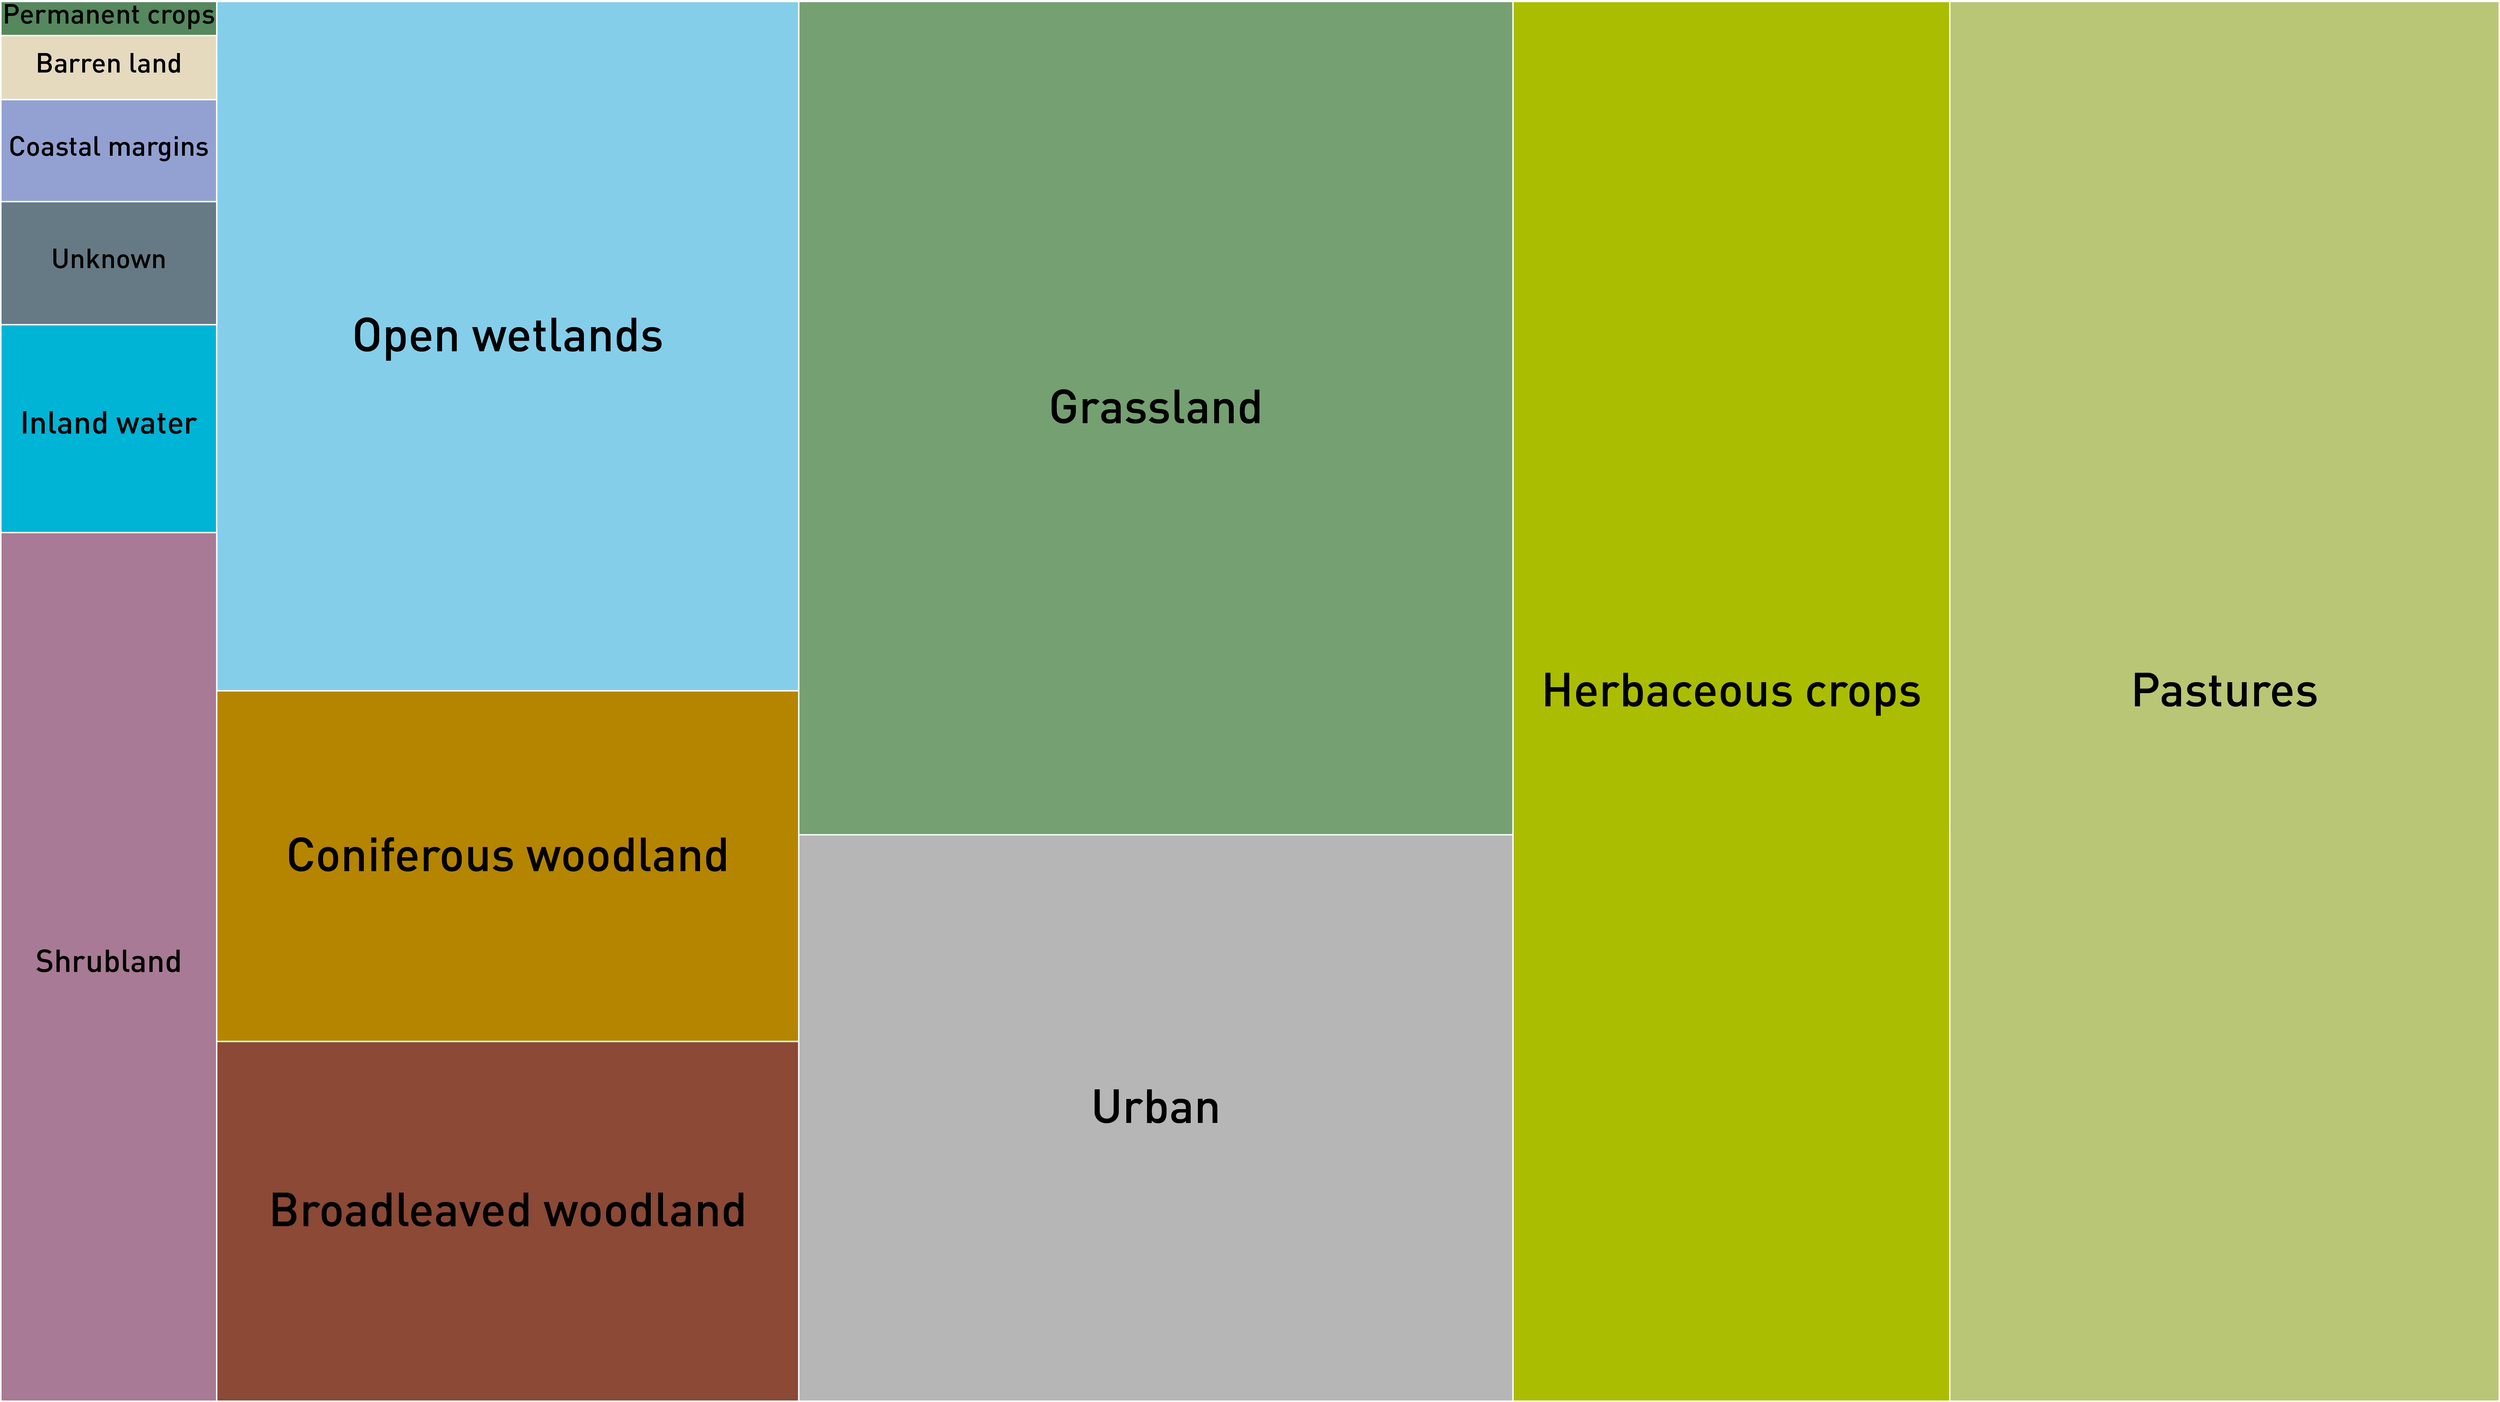 Area per person in square metres:  Urban and associated developed areas:    434  Rainfed herbaceous crops:    657  Permanent crops:    8  Pastures:    824  Semi-natural grassland:    638  Broadleaved, mixed and yew woodland:    224  Coniferous woodland:    219  Shrubland, bushland, heathland:    202  Barren land/Sparsely vegetated areas:    15  Open wetlands:    430  Inland water bodies:    48  Coastal margins:    23  Unknown :    28  Total:    3,750